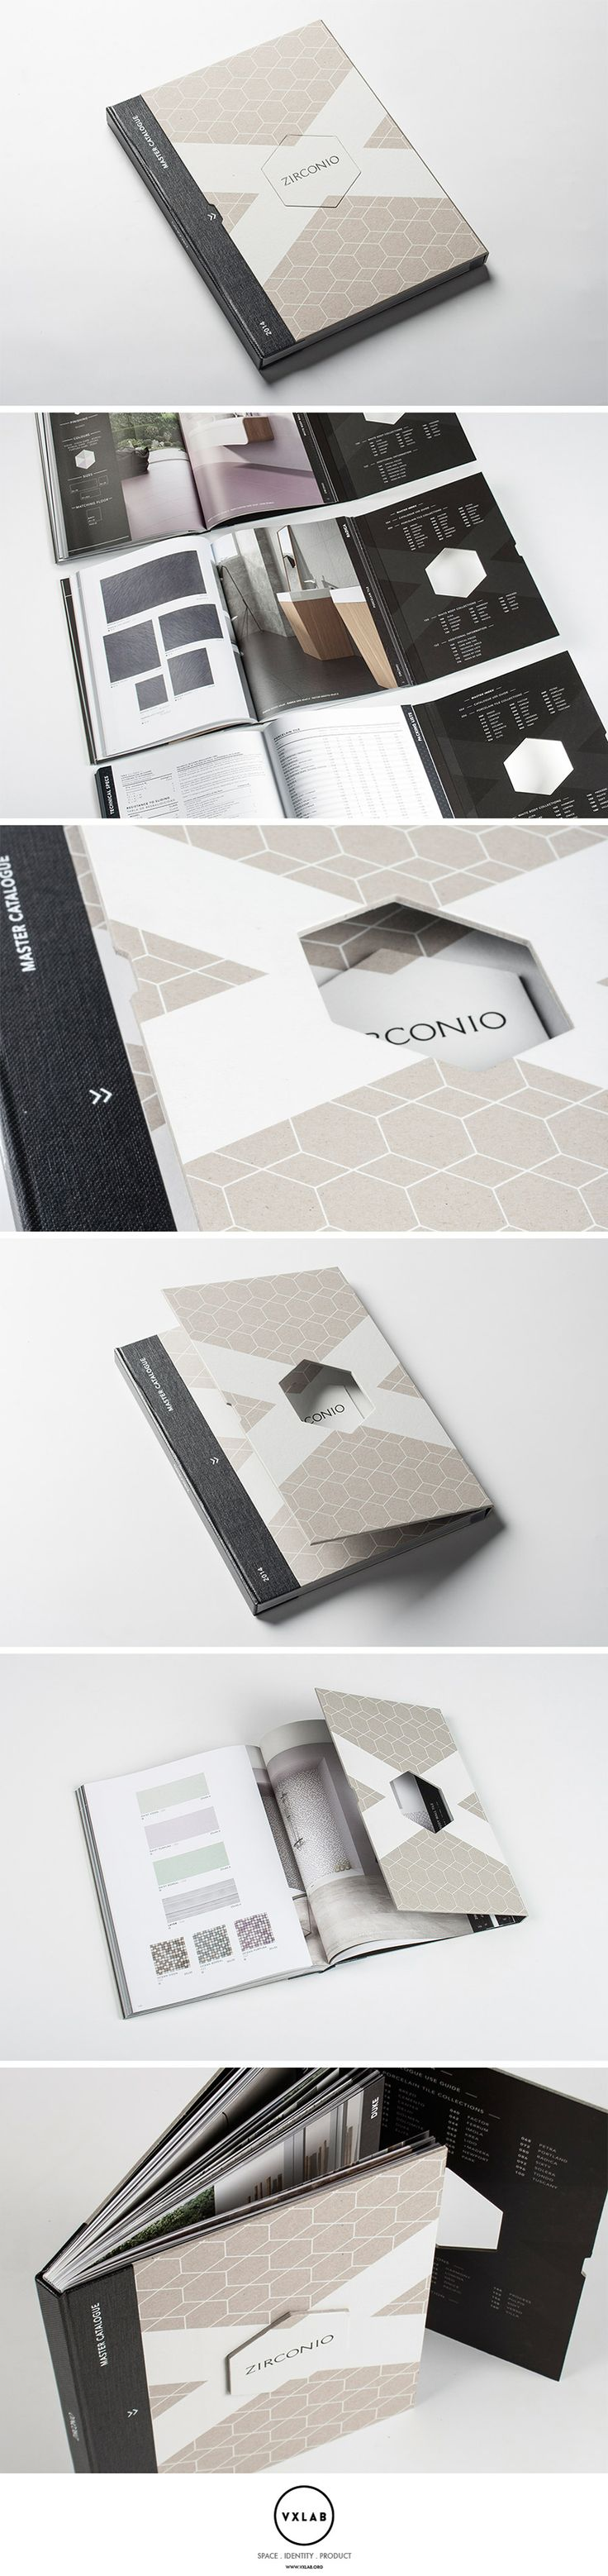 Zirconio Master Catalogue, Special Edition. design by VXLAB @Holly Hanshew Hanshew Hanshew Smith